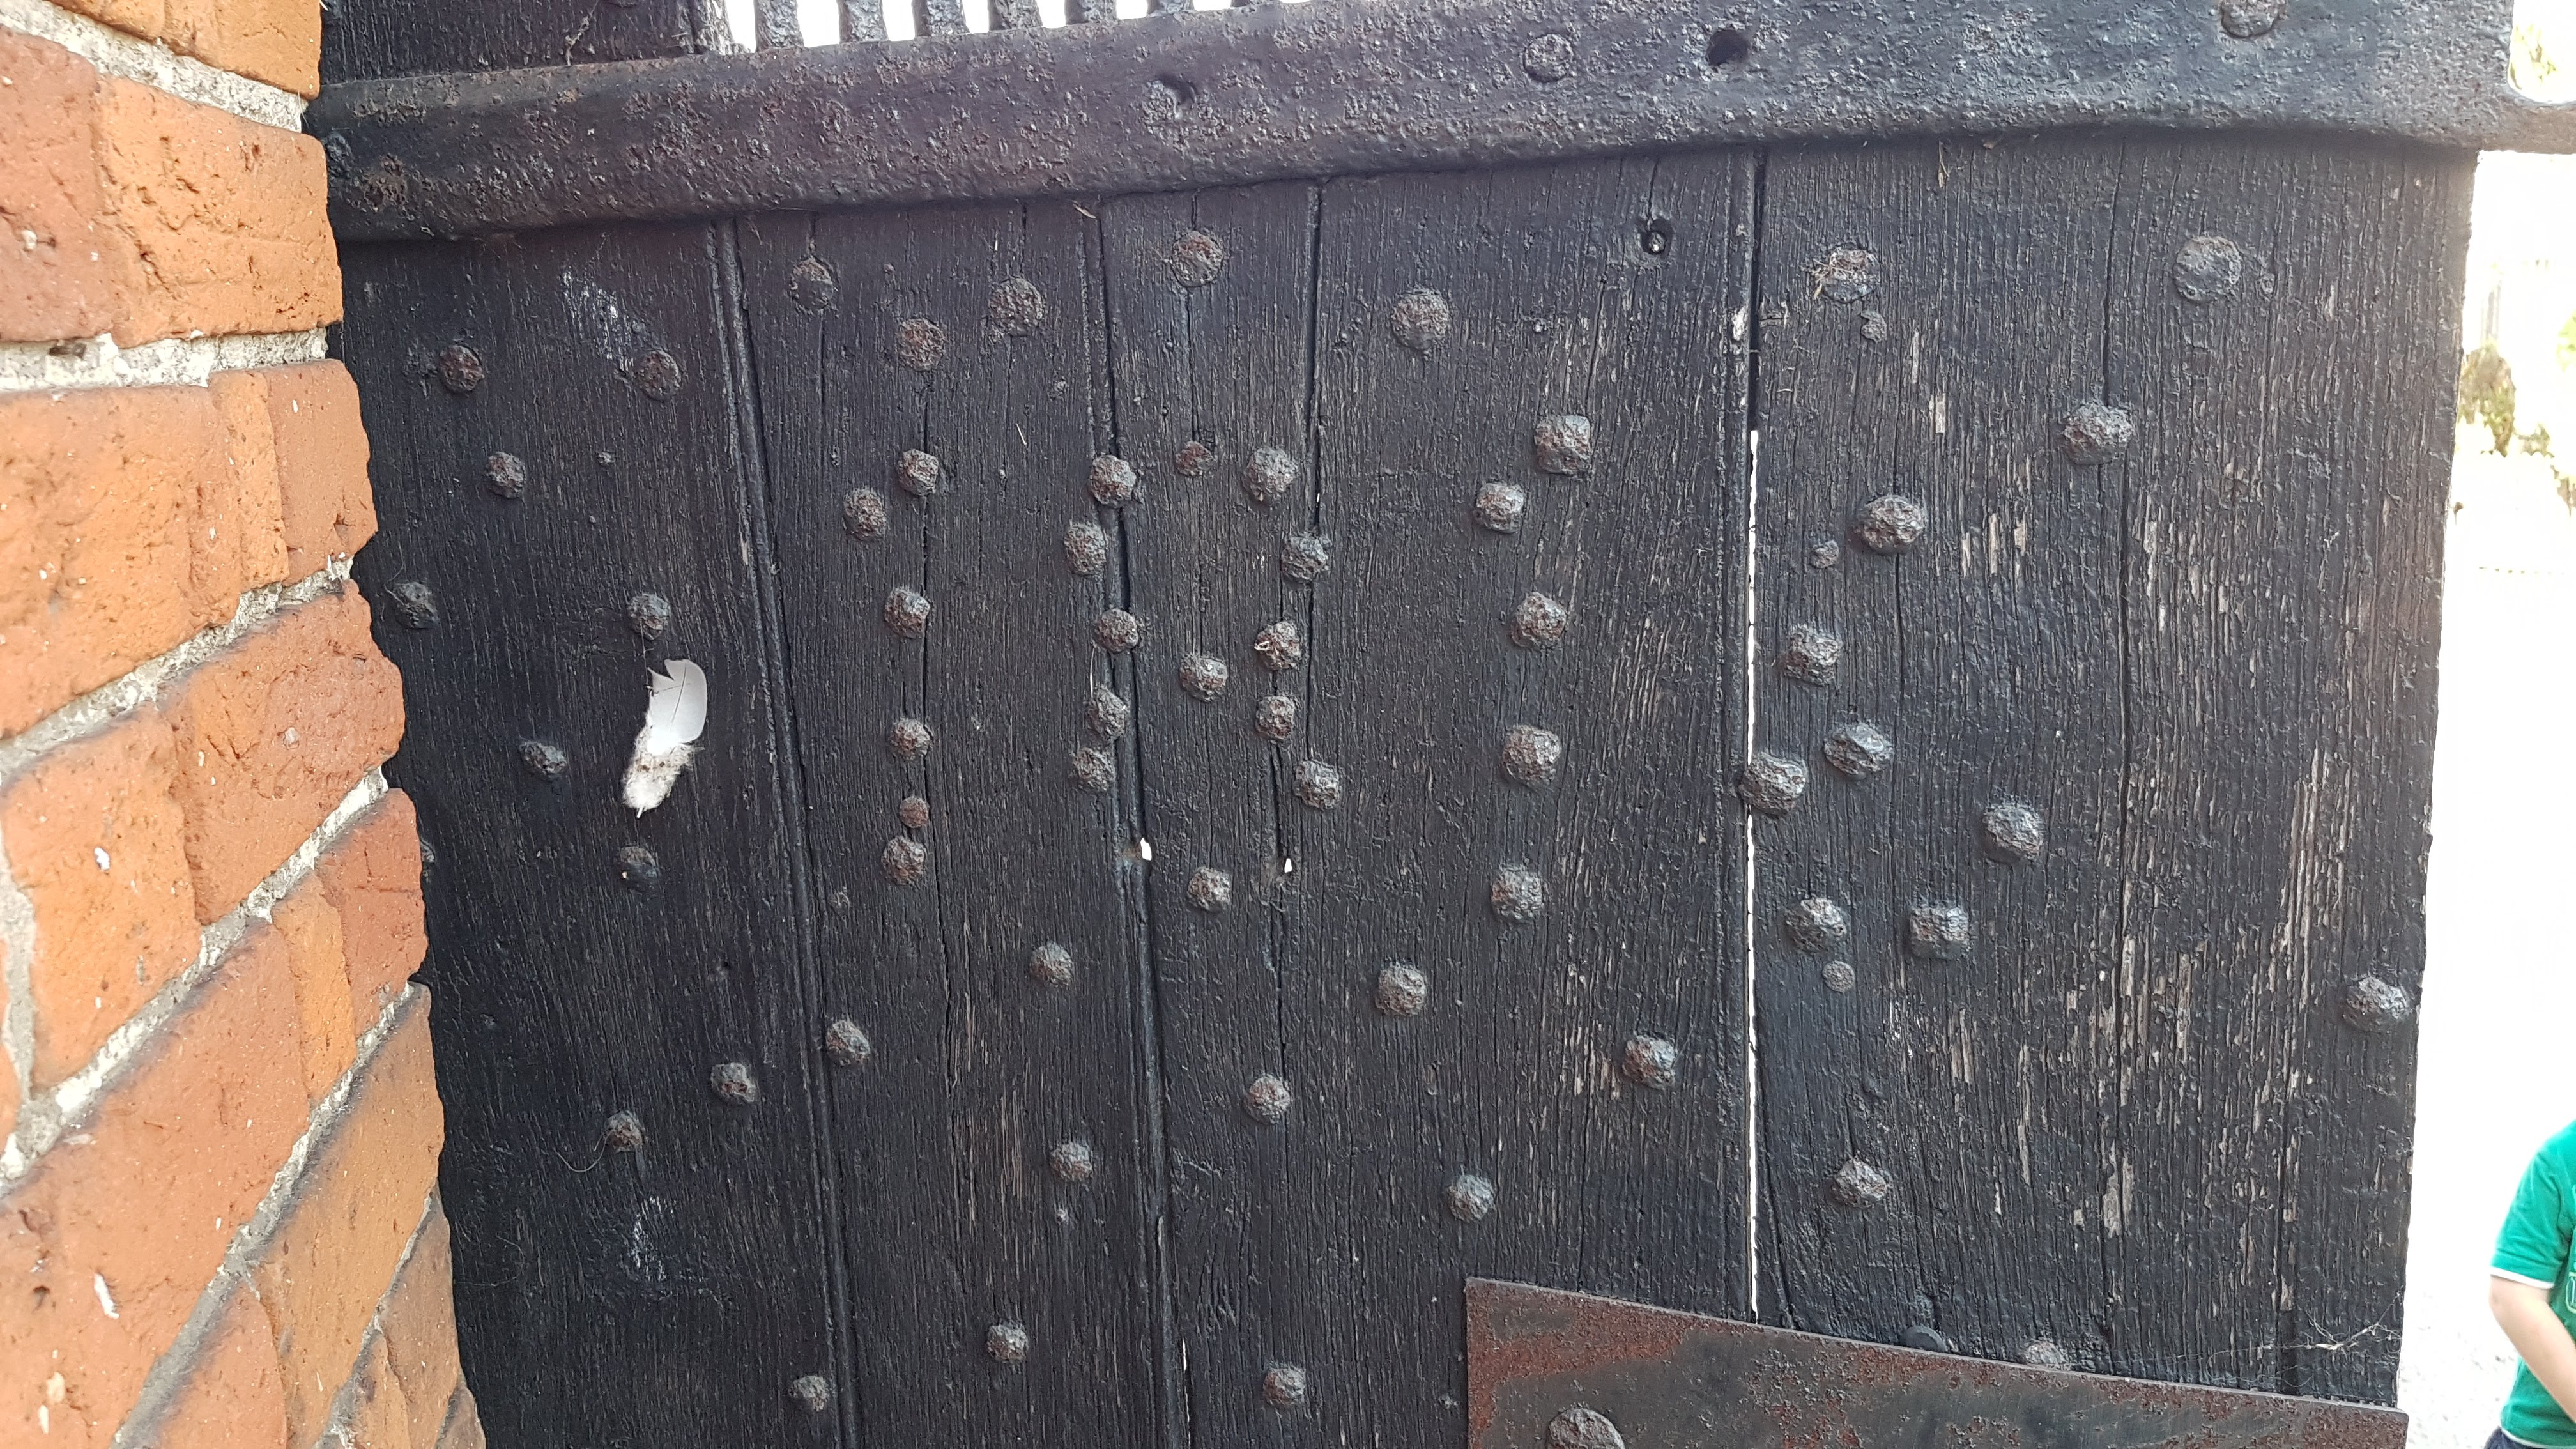 Studs nailed into outer door which form the numbers - 1816 - presumably the year in which the lock-up was built.